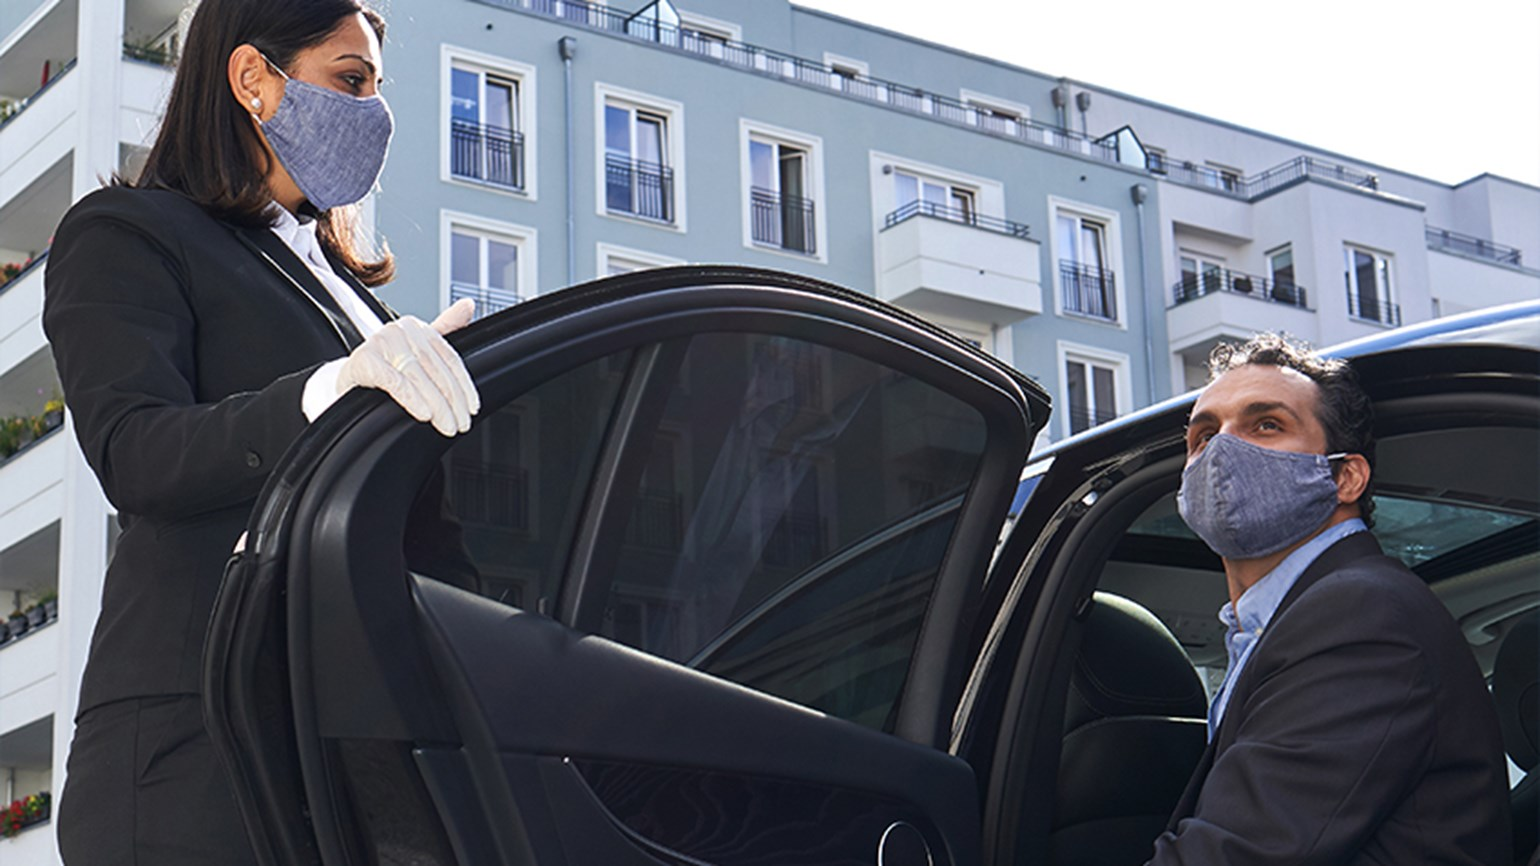 Blacklane to enter 21 cities in March